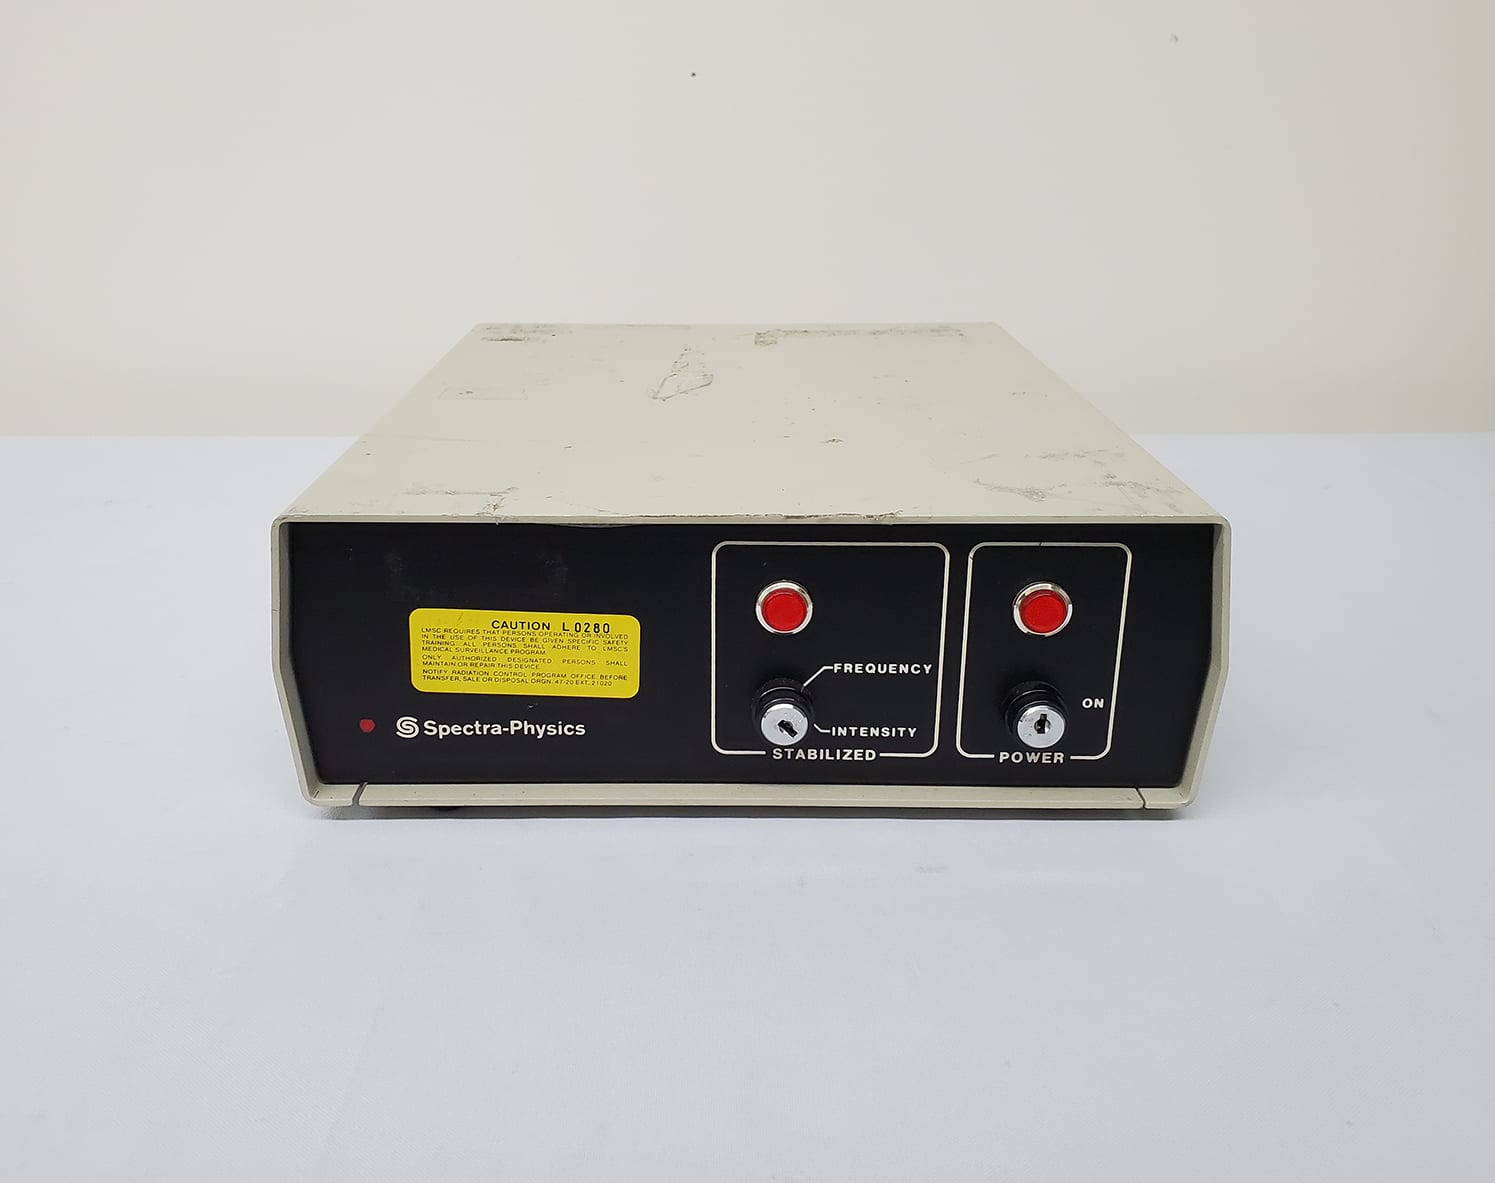 Buy Spectra Physics 117 A Stabilized HeNe Laser Controller -60002